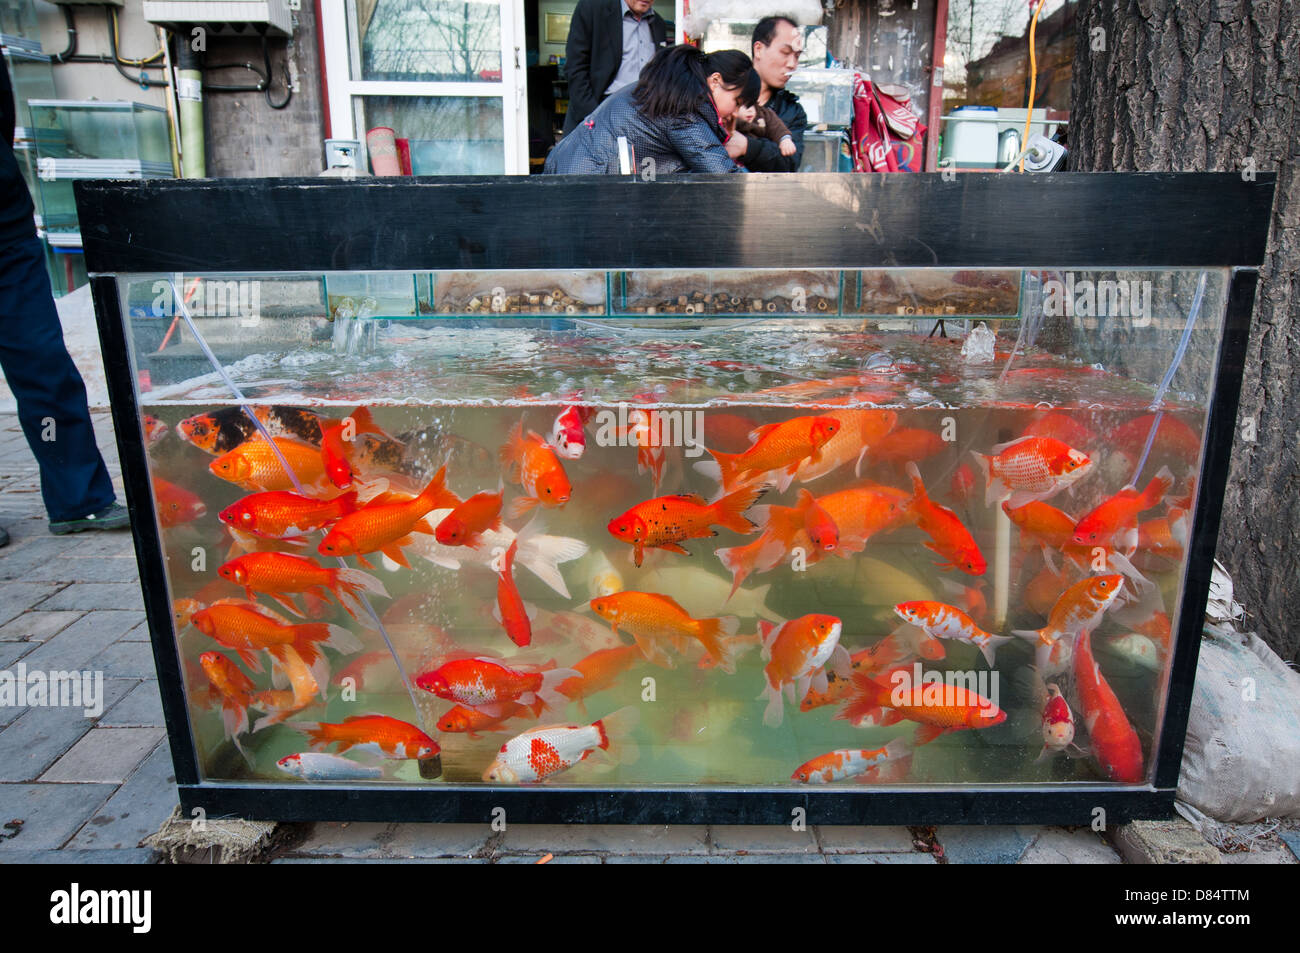 Fish for aquarium in kolkata - Fish Tank With Red Fishes On Sidewalk In Front Of Pet Store Beijing China